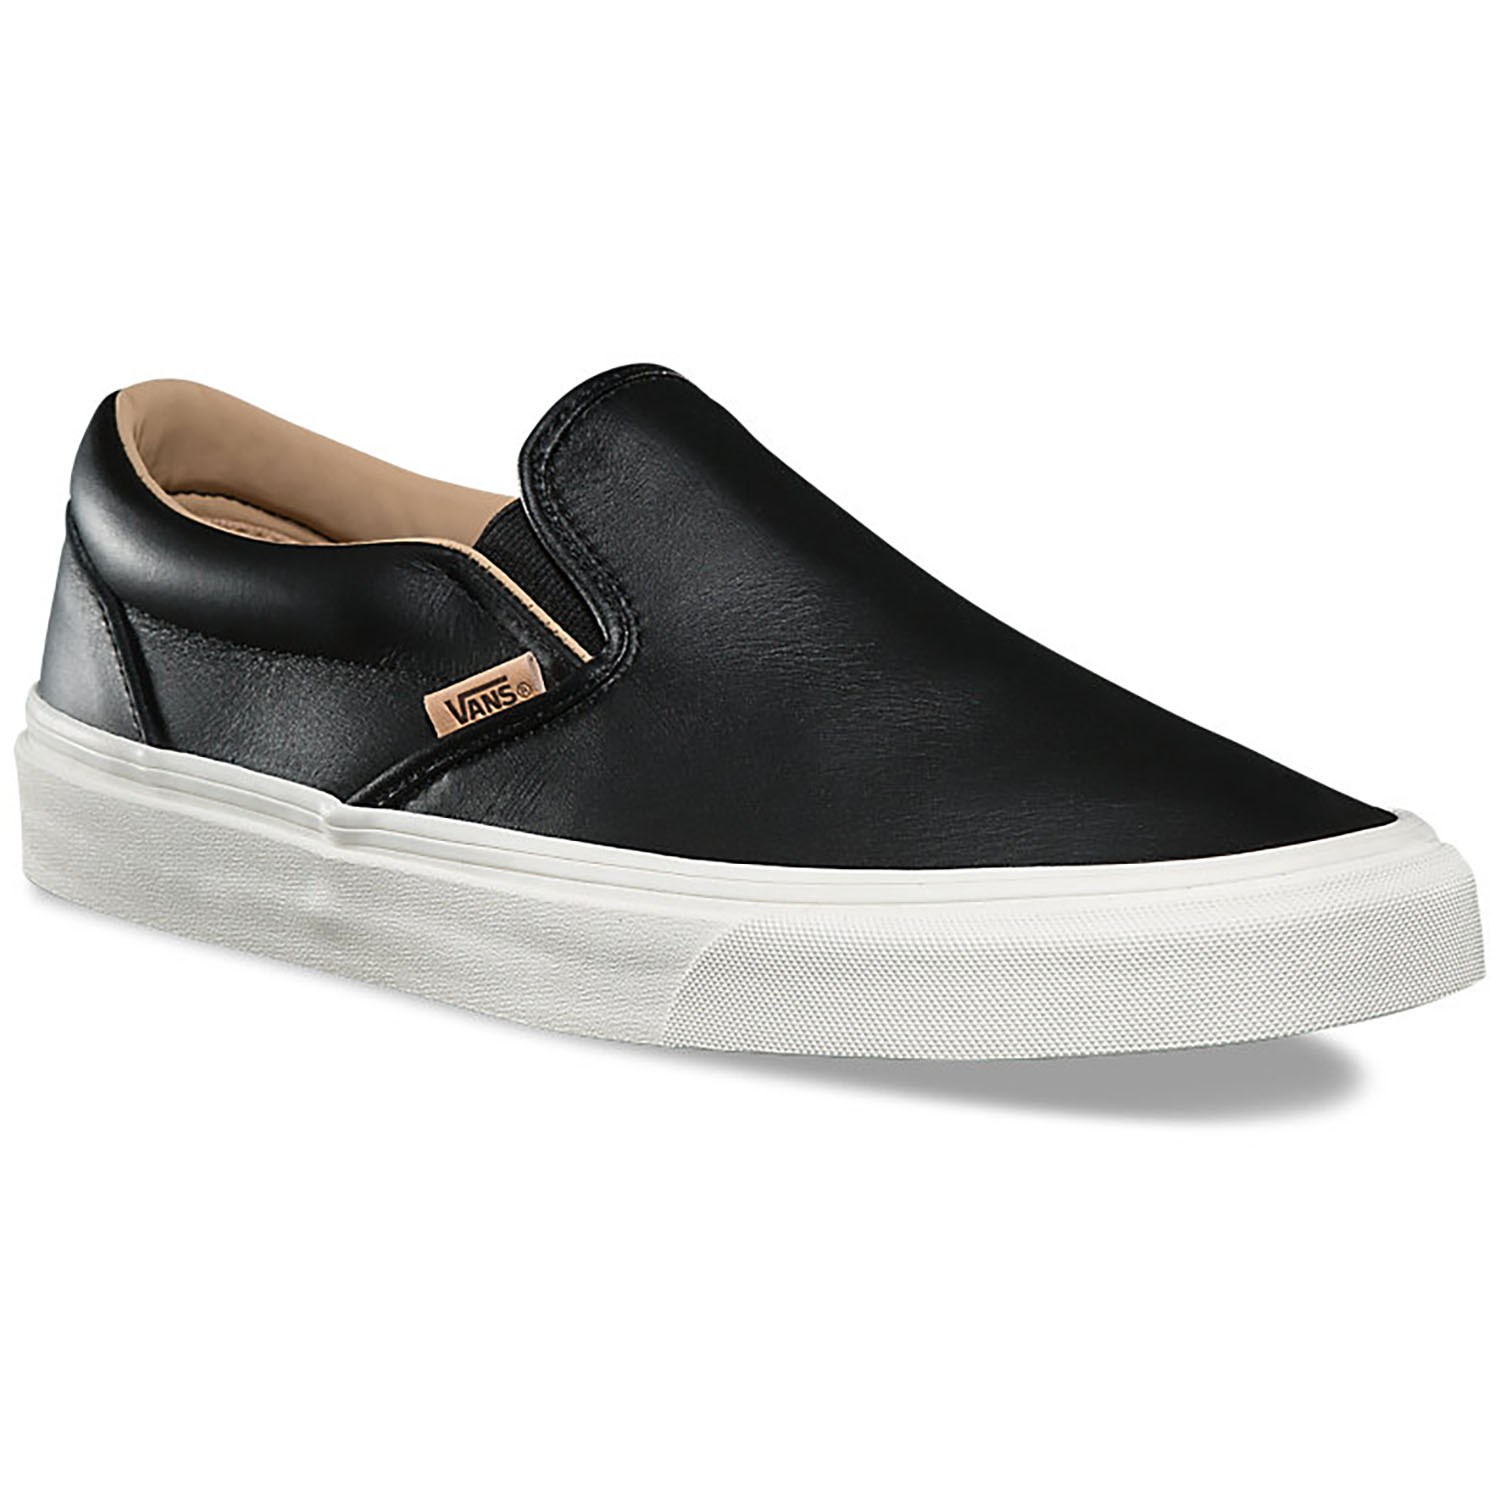 Vans Lux Leather Classic Slip-On Shoes